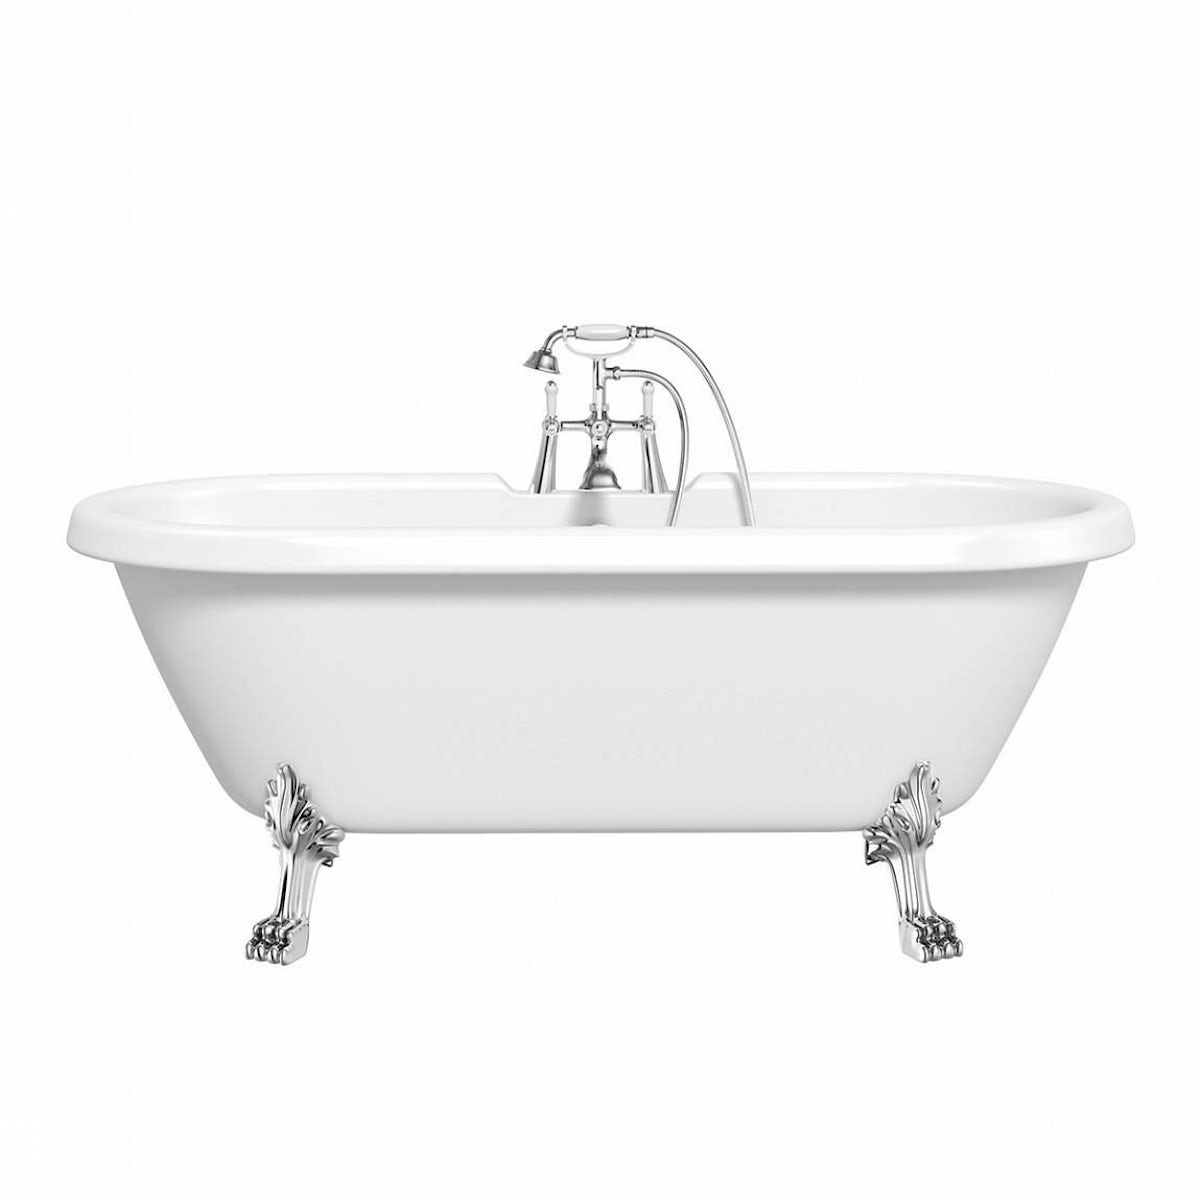 Shakespeare Roll Top Bath With Dragon Feet 1700mm Offer Pack